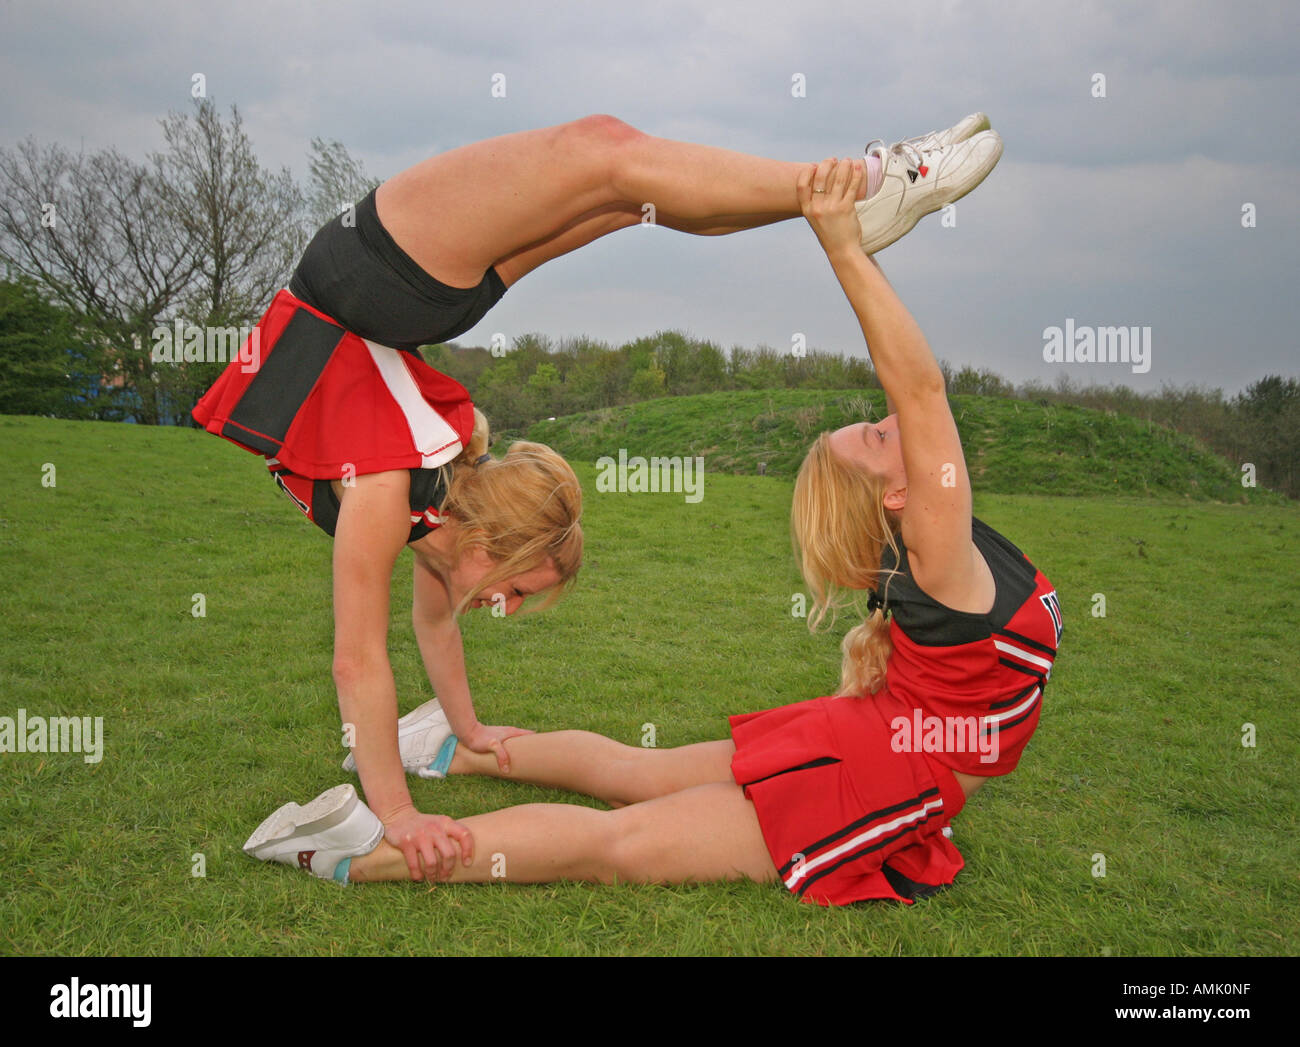 cheerleaders practicing moves - Stock Image